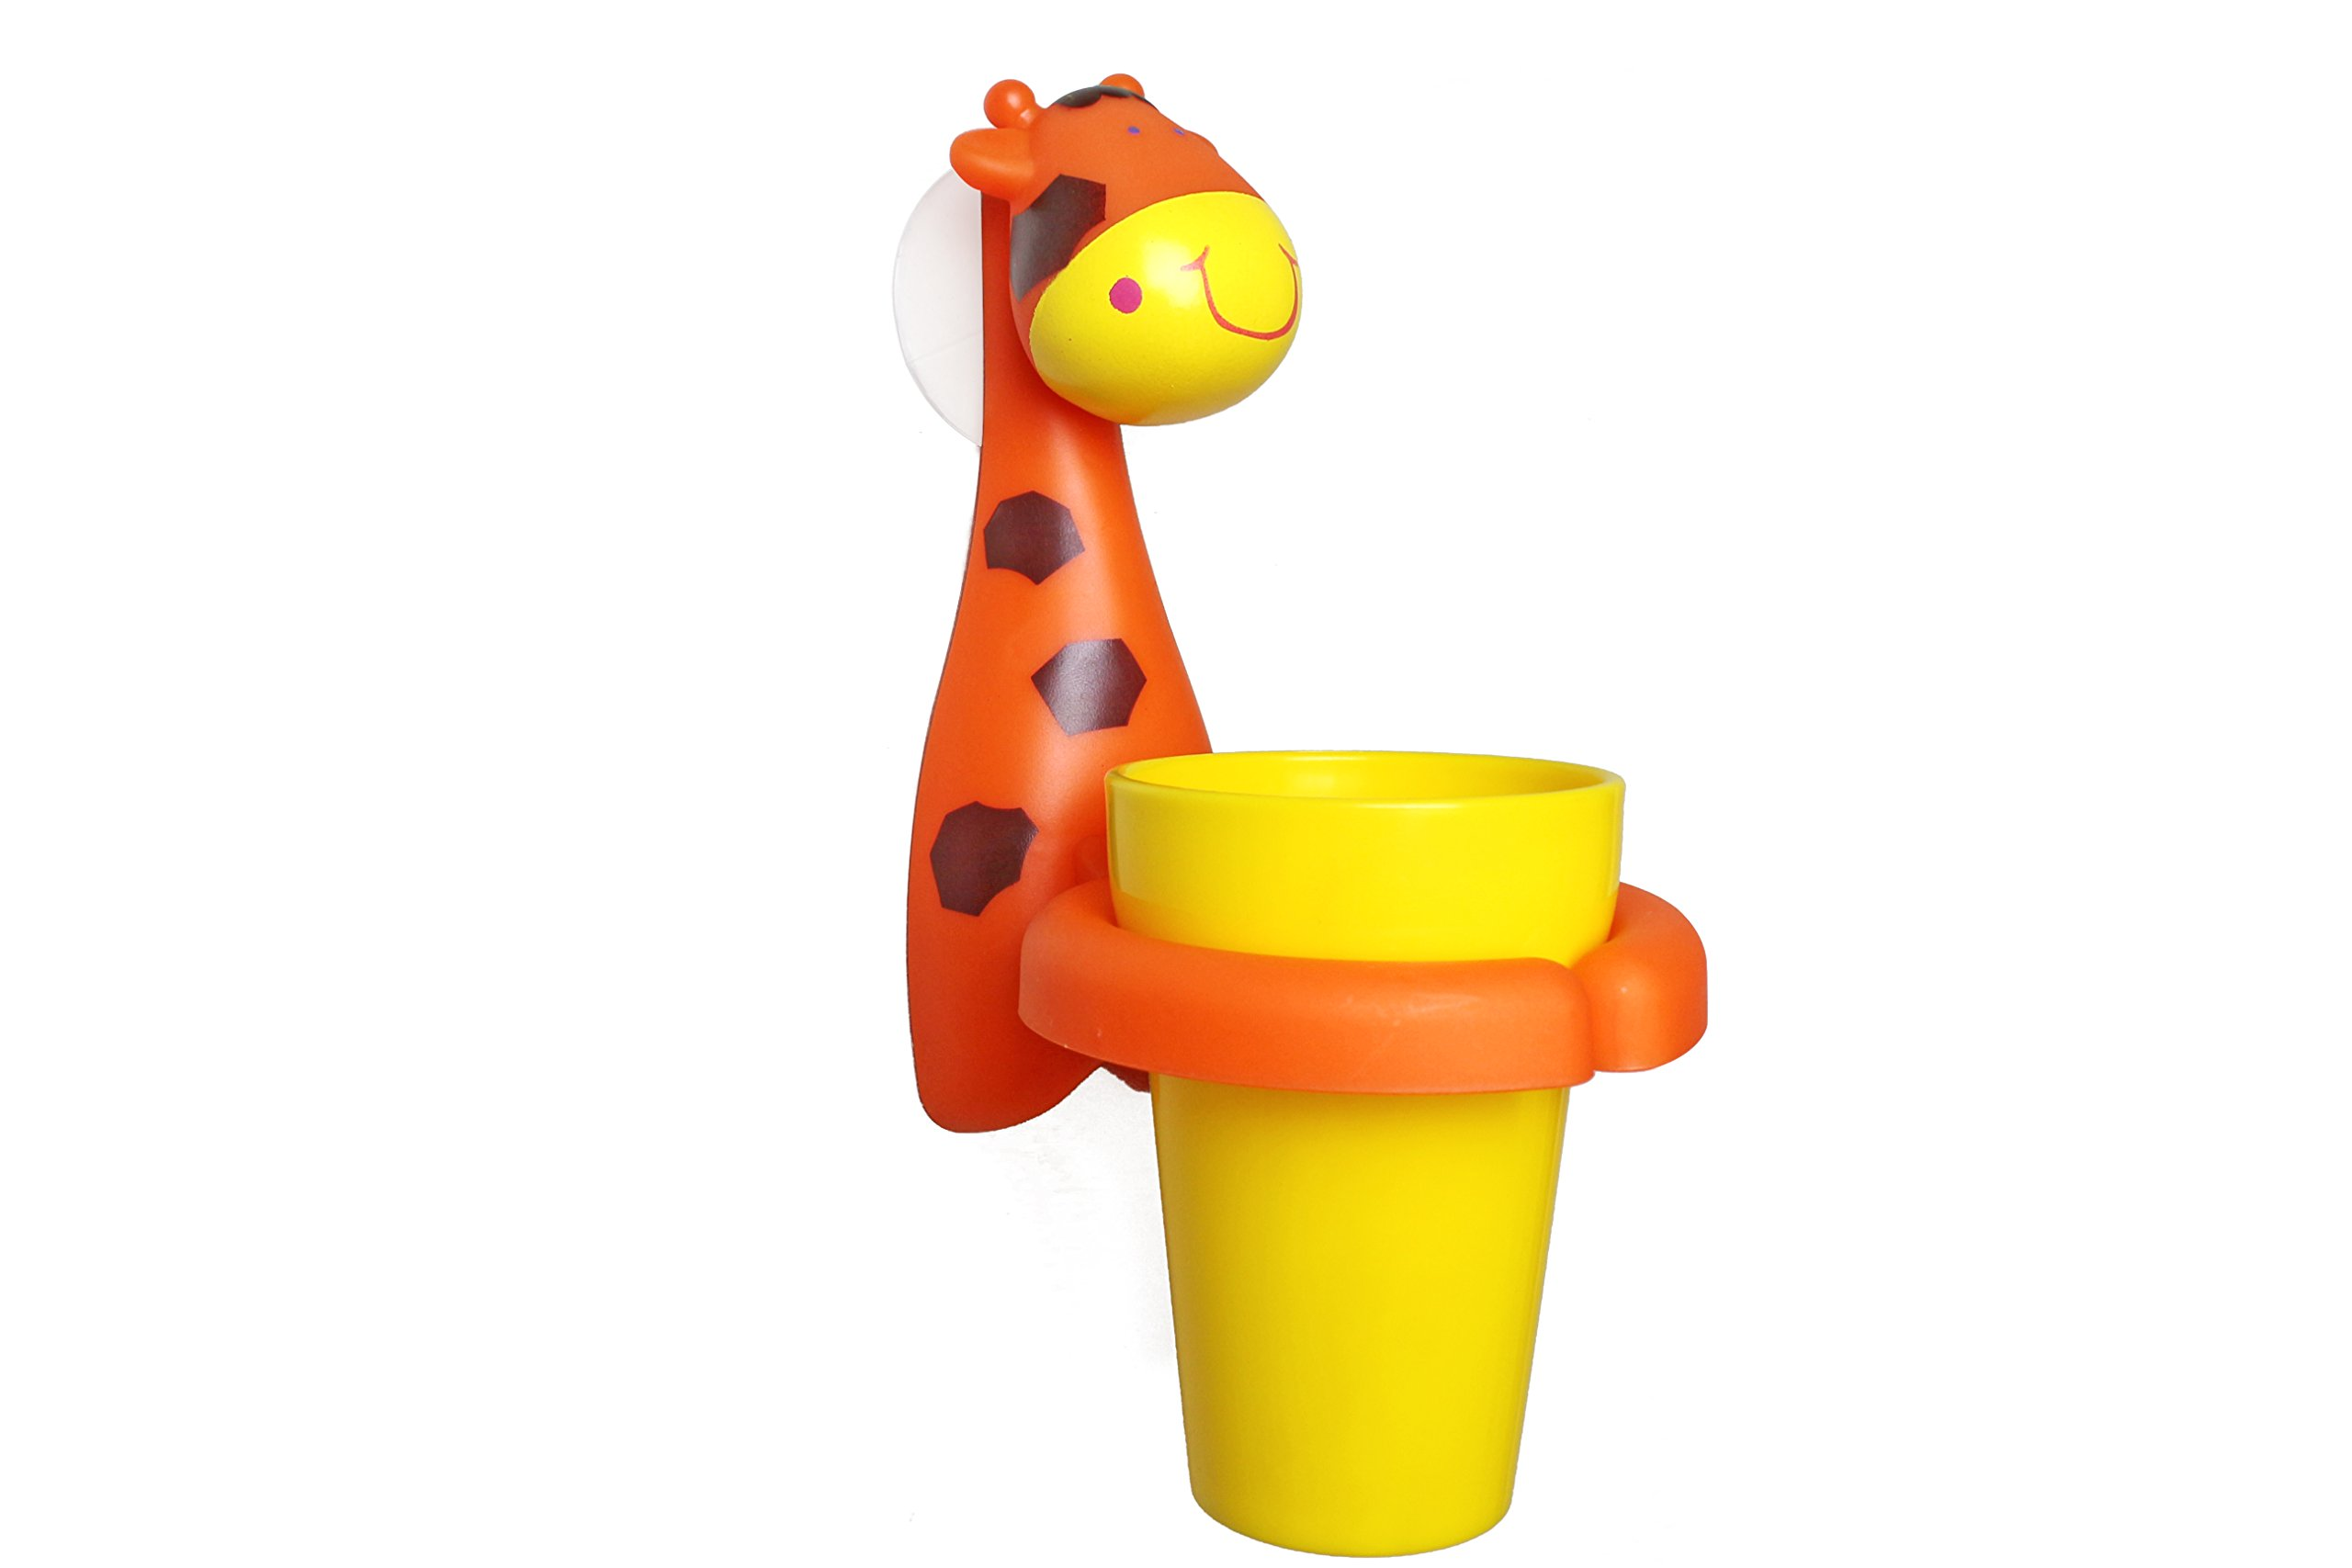 Excelity Cute Animal Child Kid Toothbrush Set with Toothbrush Rinse Cup and Holder (Giraffe)